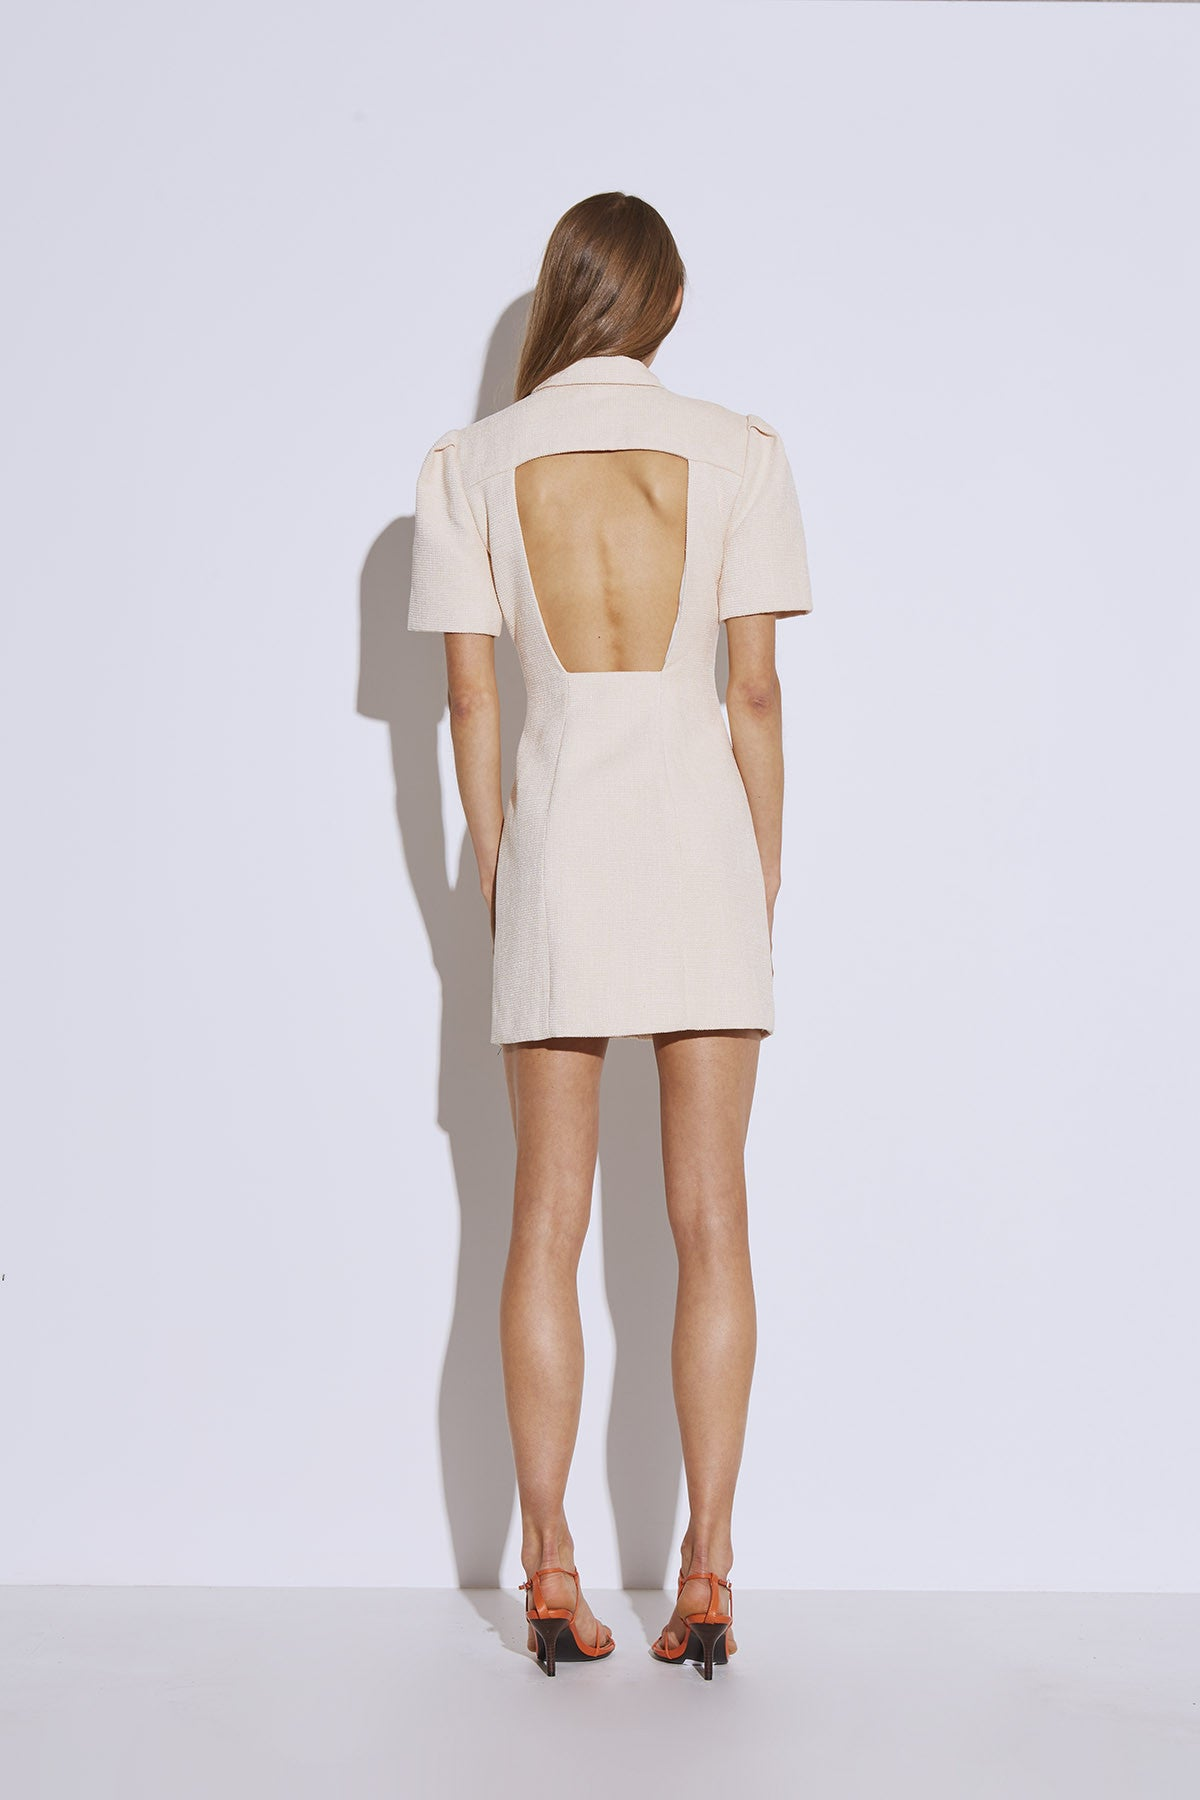 PROPHECY DRESS cream